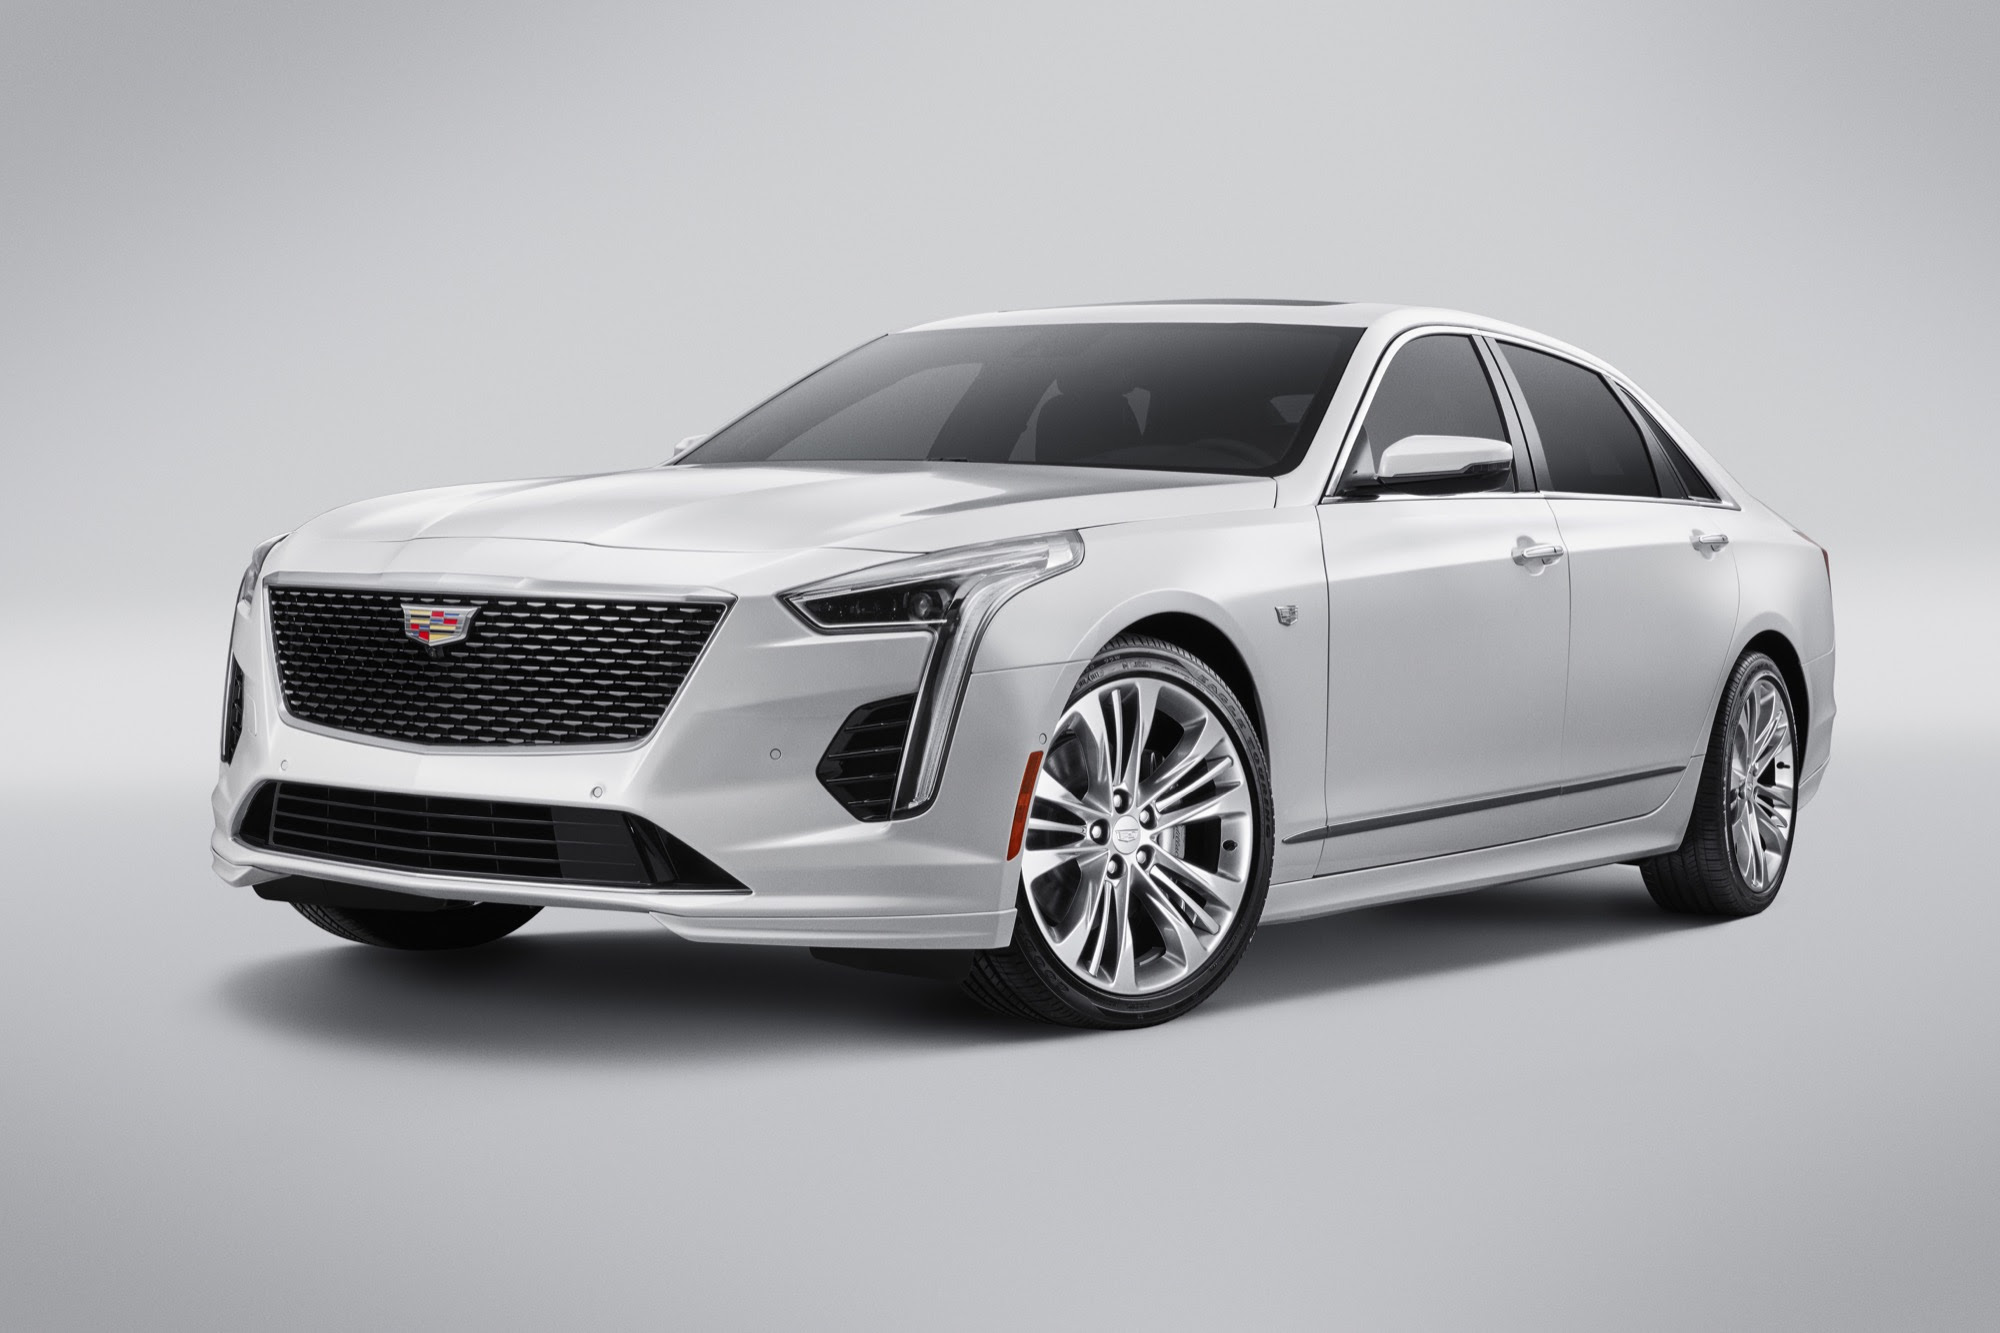 New Shadow Metallic Color For 2019 Cadillac CT6: First ...